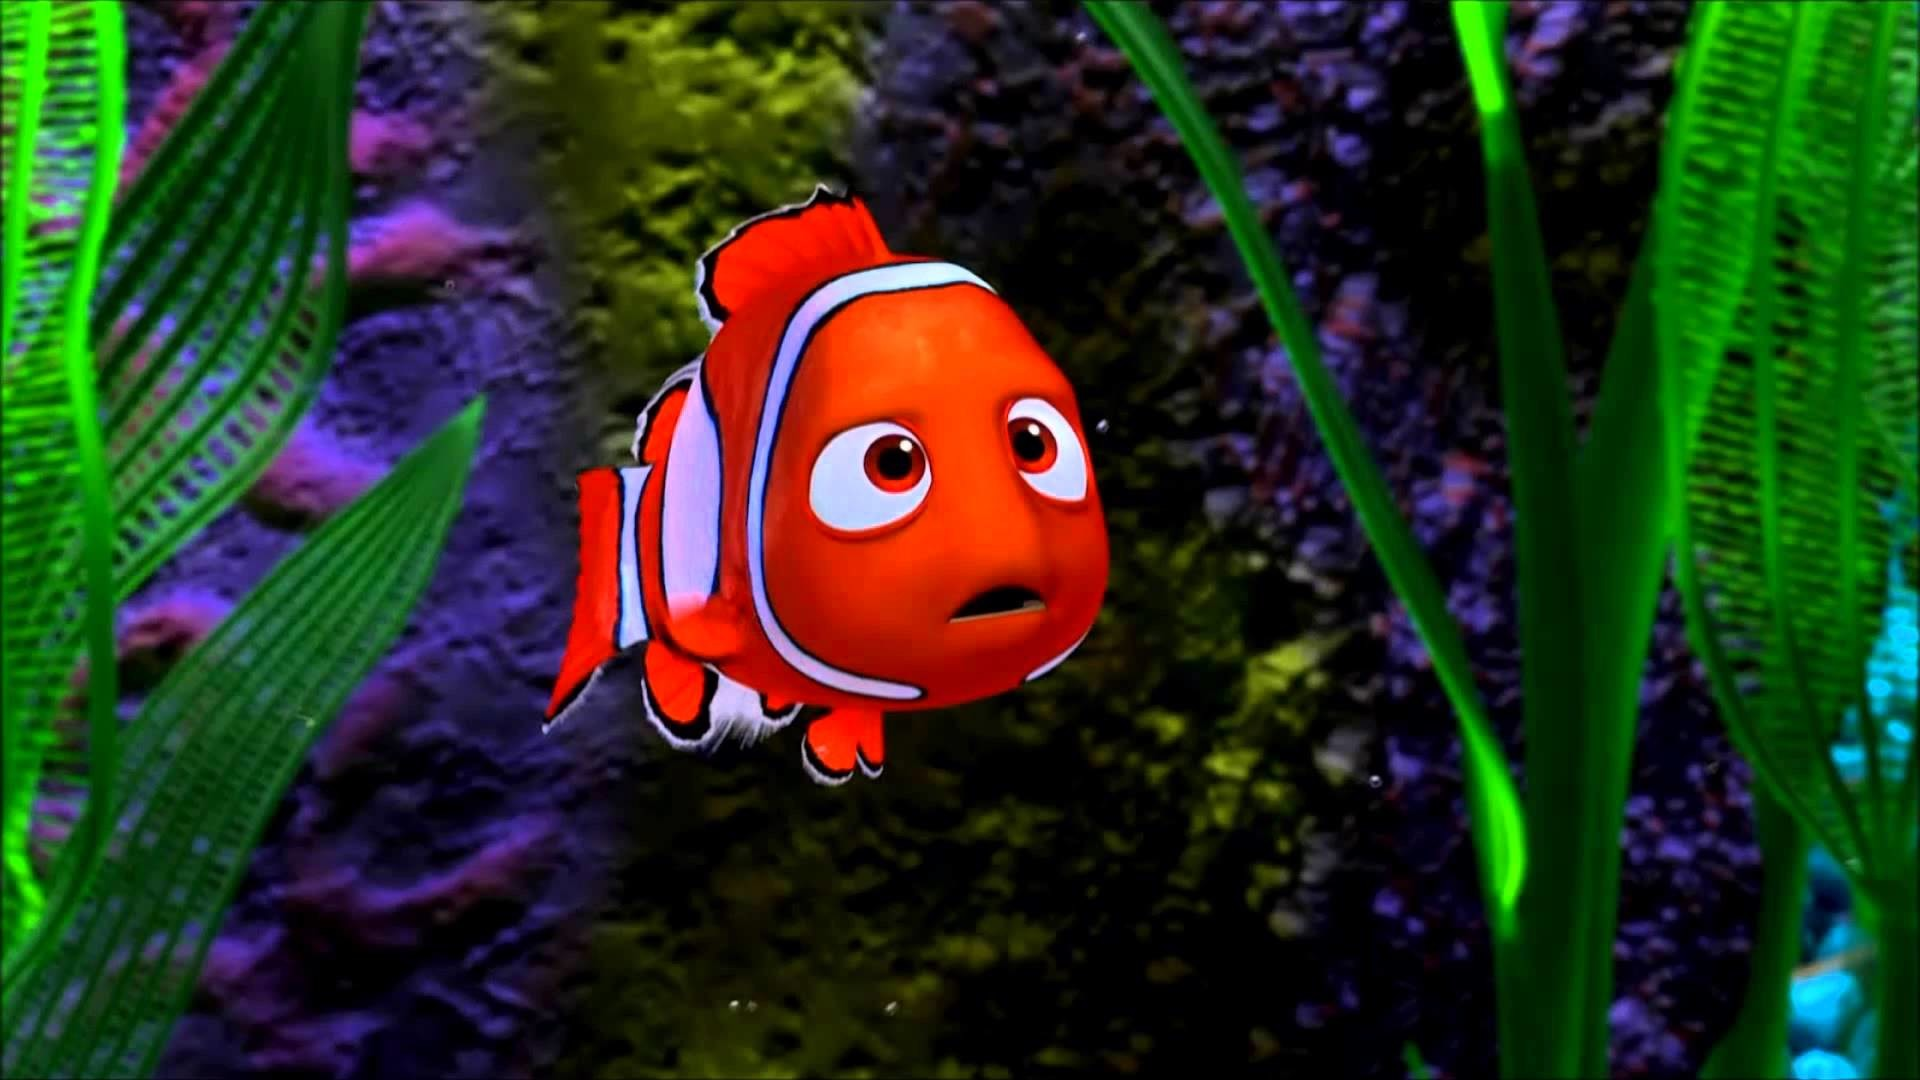 Fish Animation Wallpaper Free Download Hd Nemo Wallpapers 61 Images